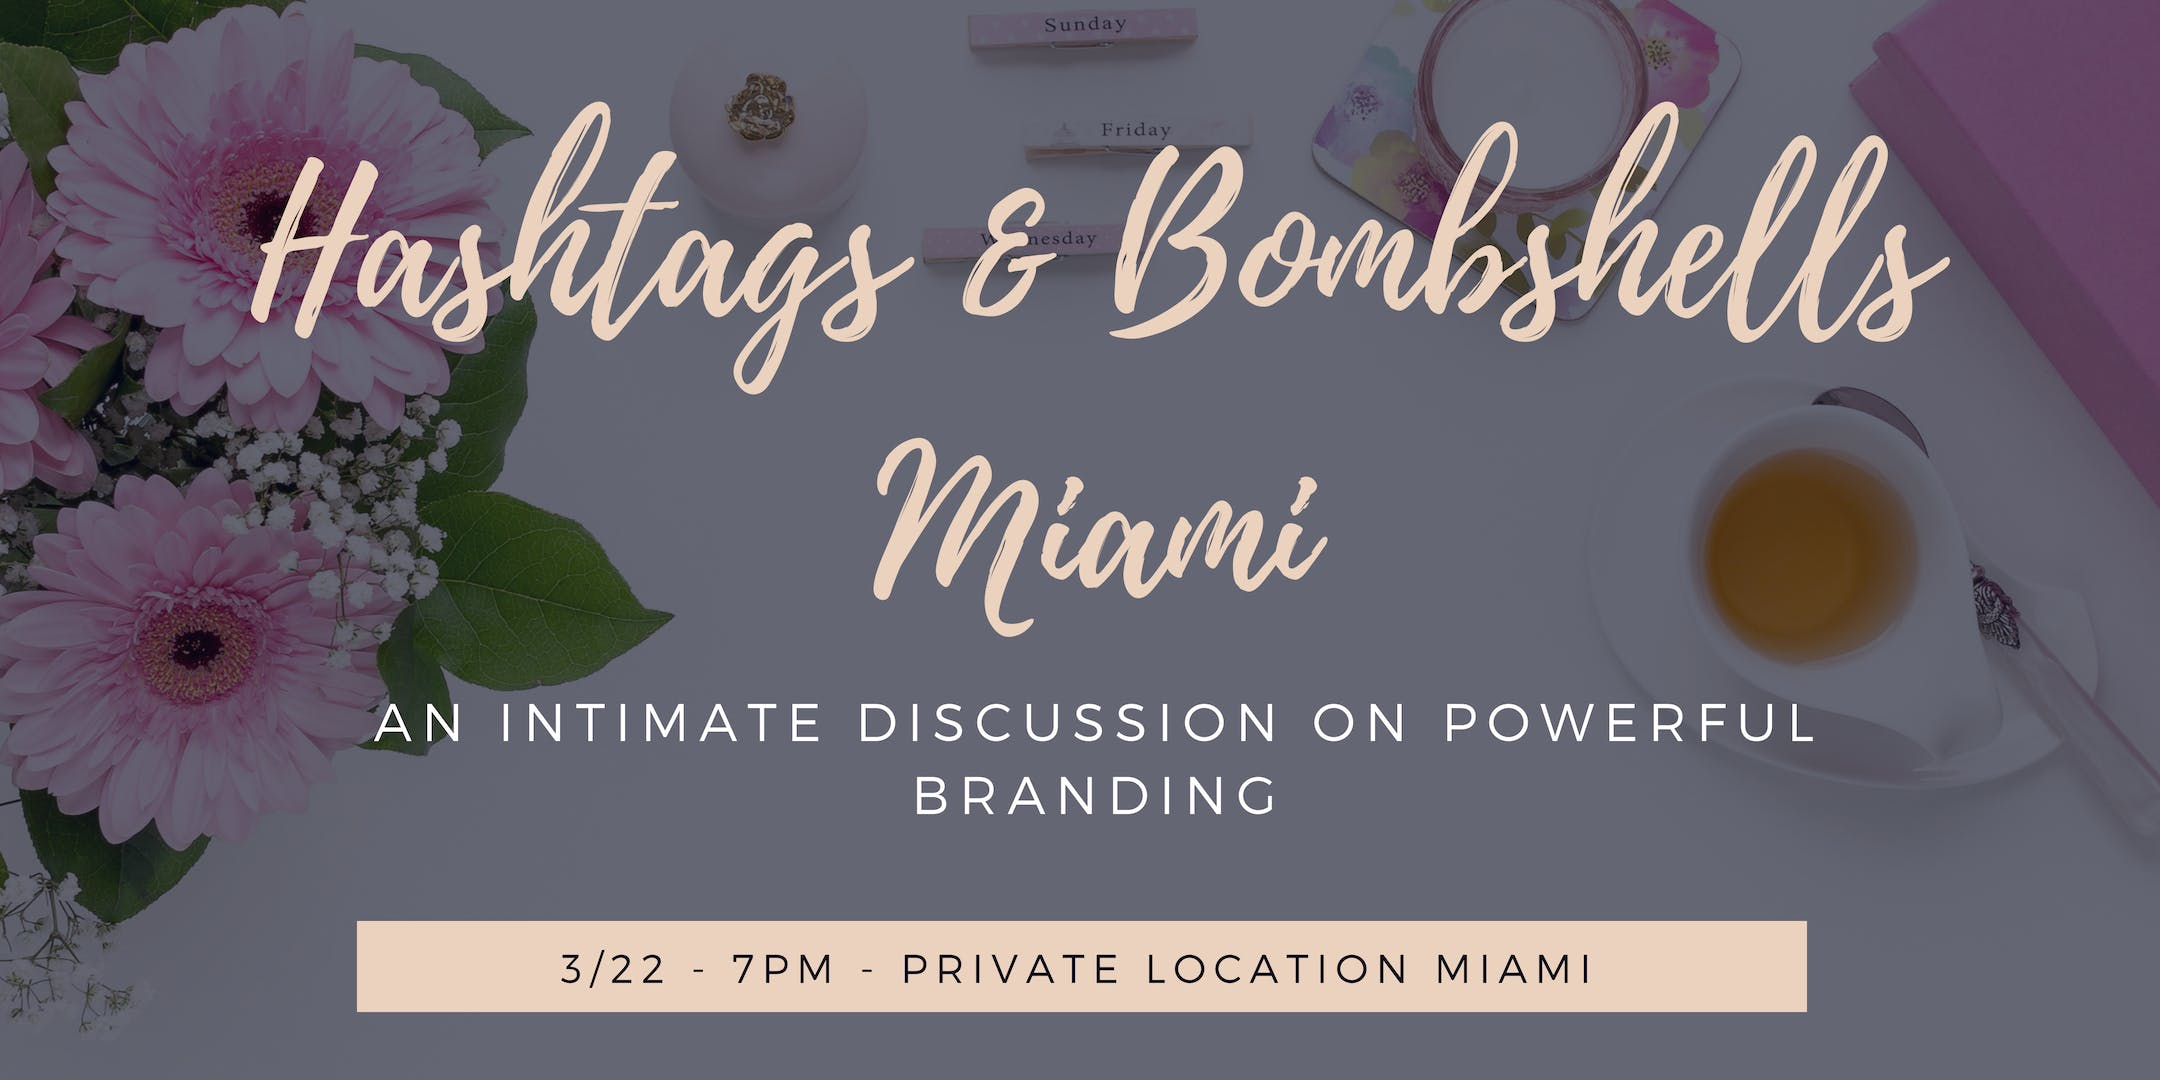 Hashtags & Bombshells Miami:  An Intimate Discussion on Branding